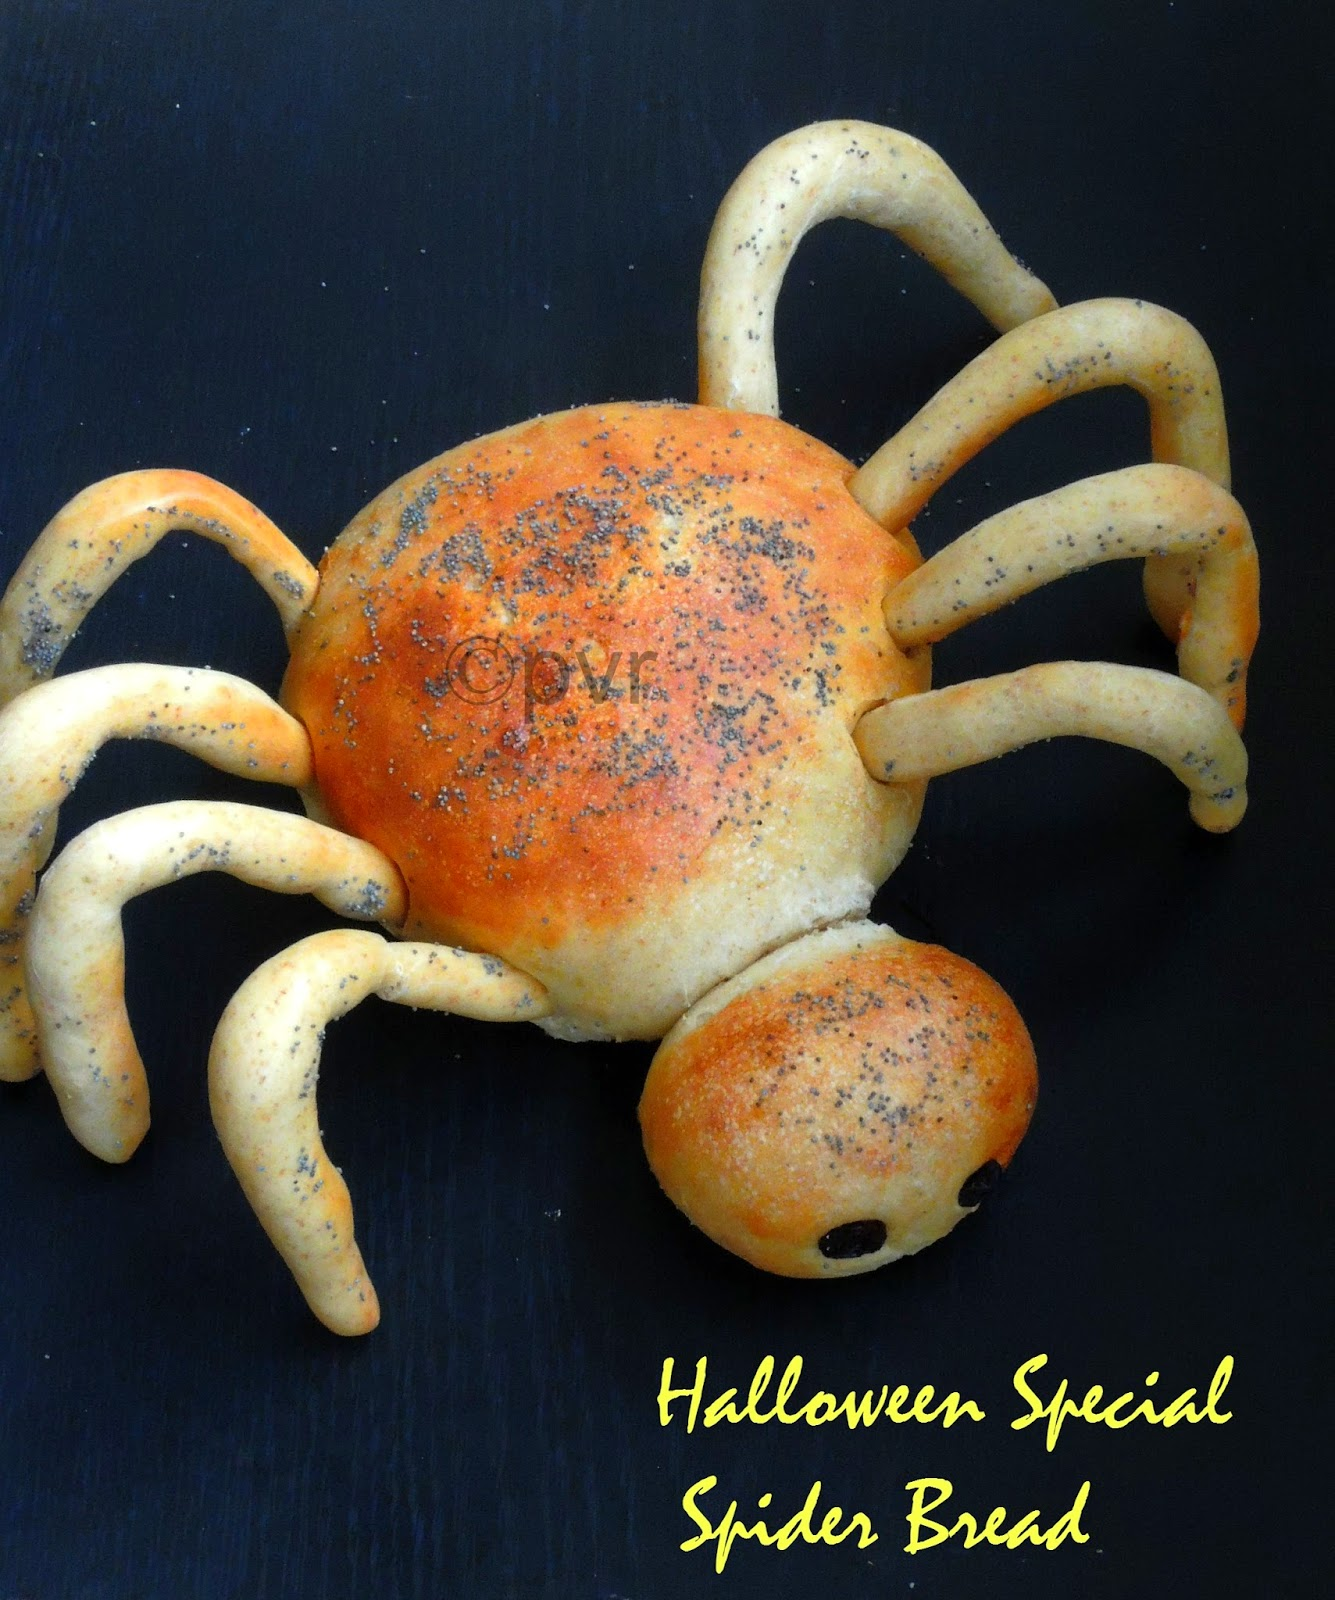 Spider bread